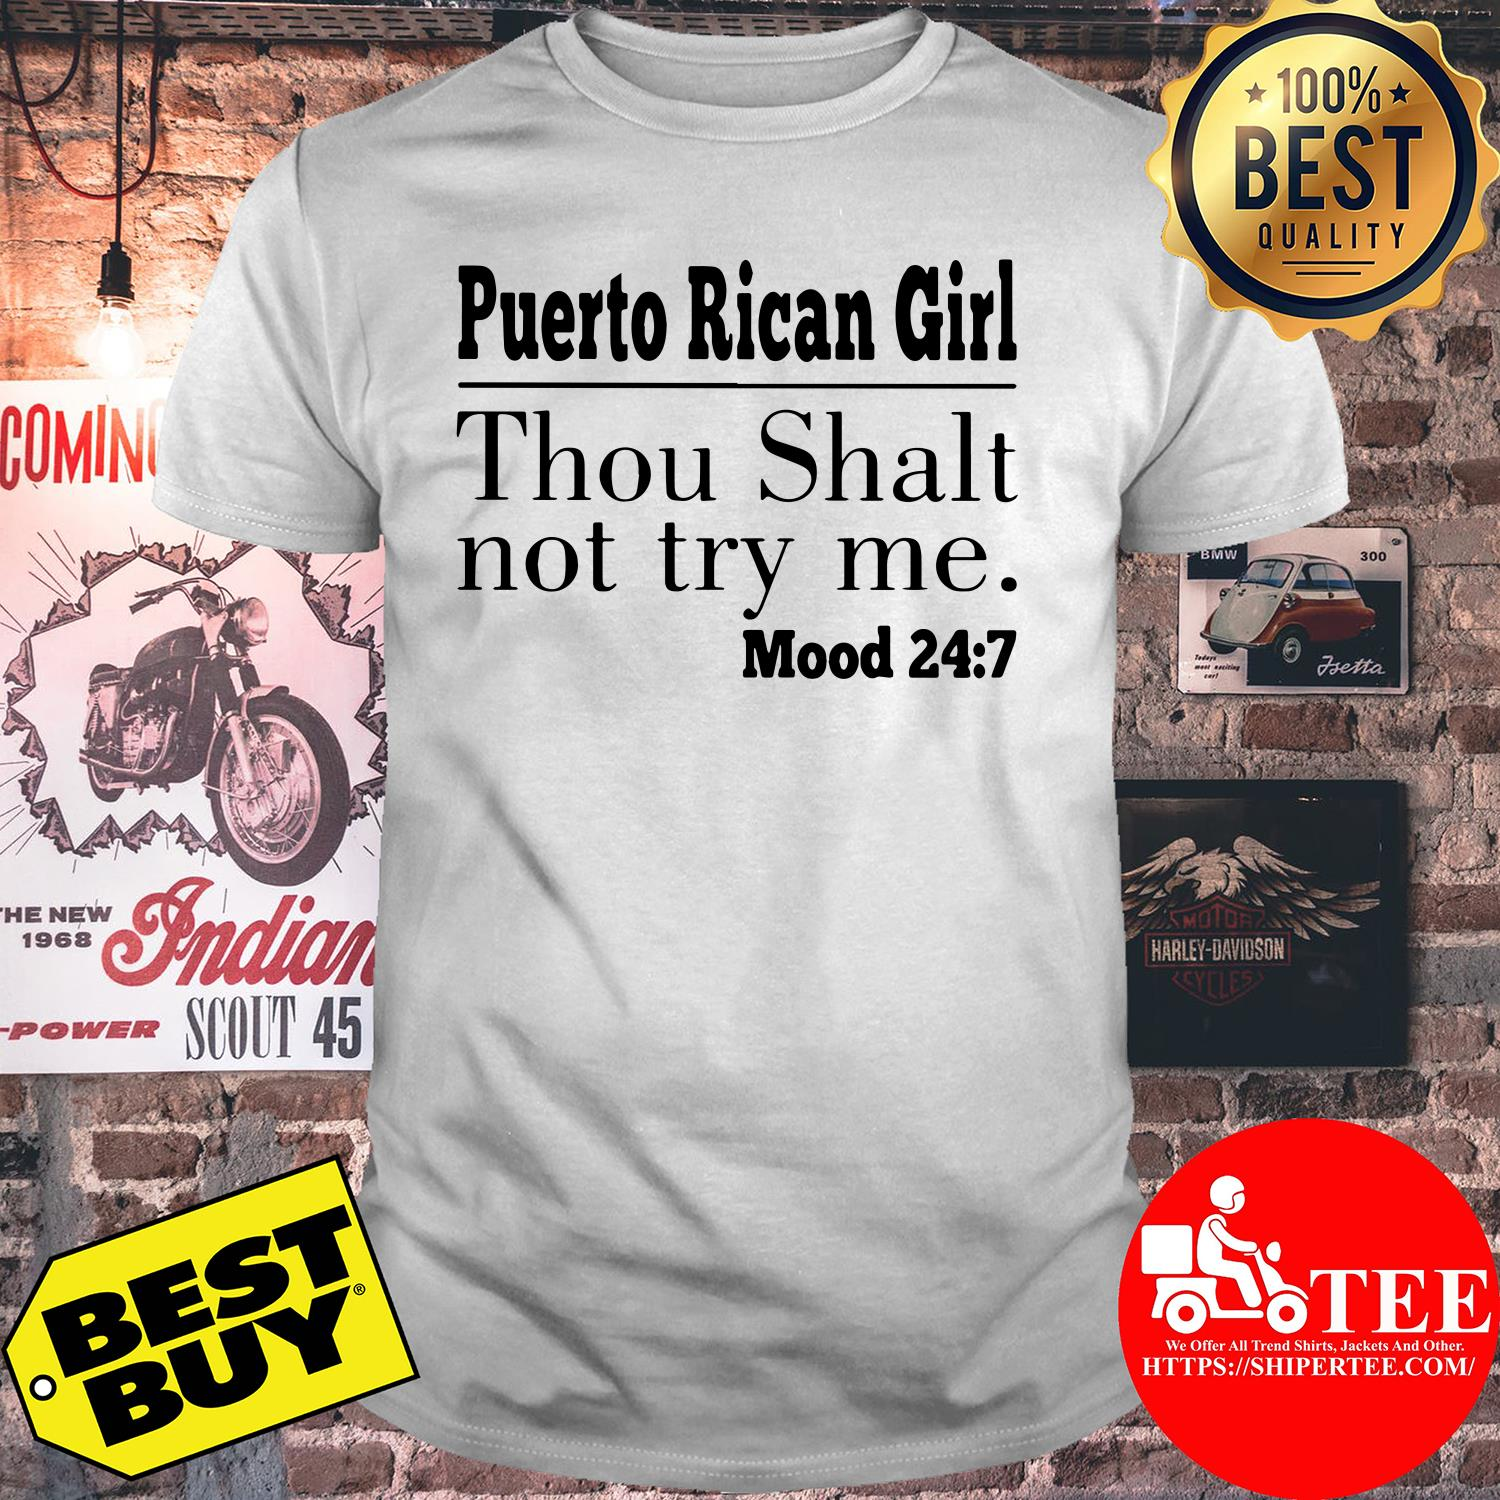 Puerto Rican Girl Thou Shalt not try me mood 24/7 shirt